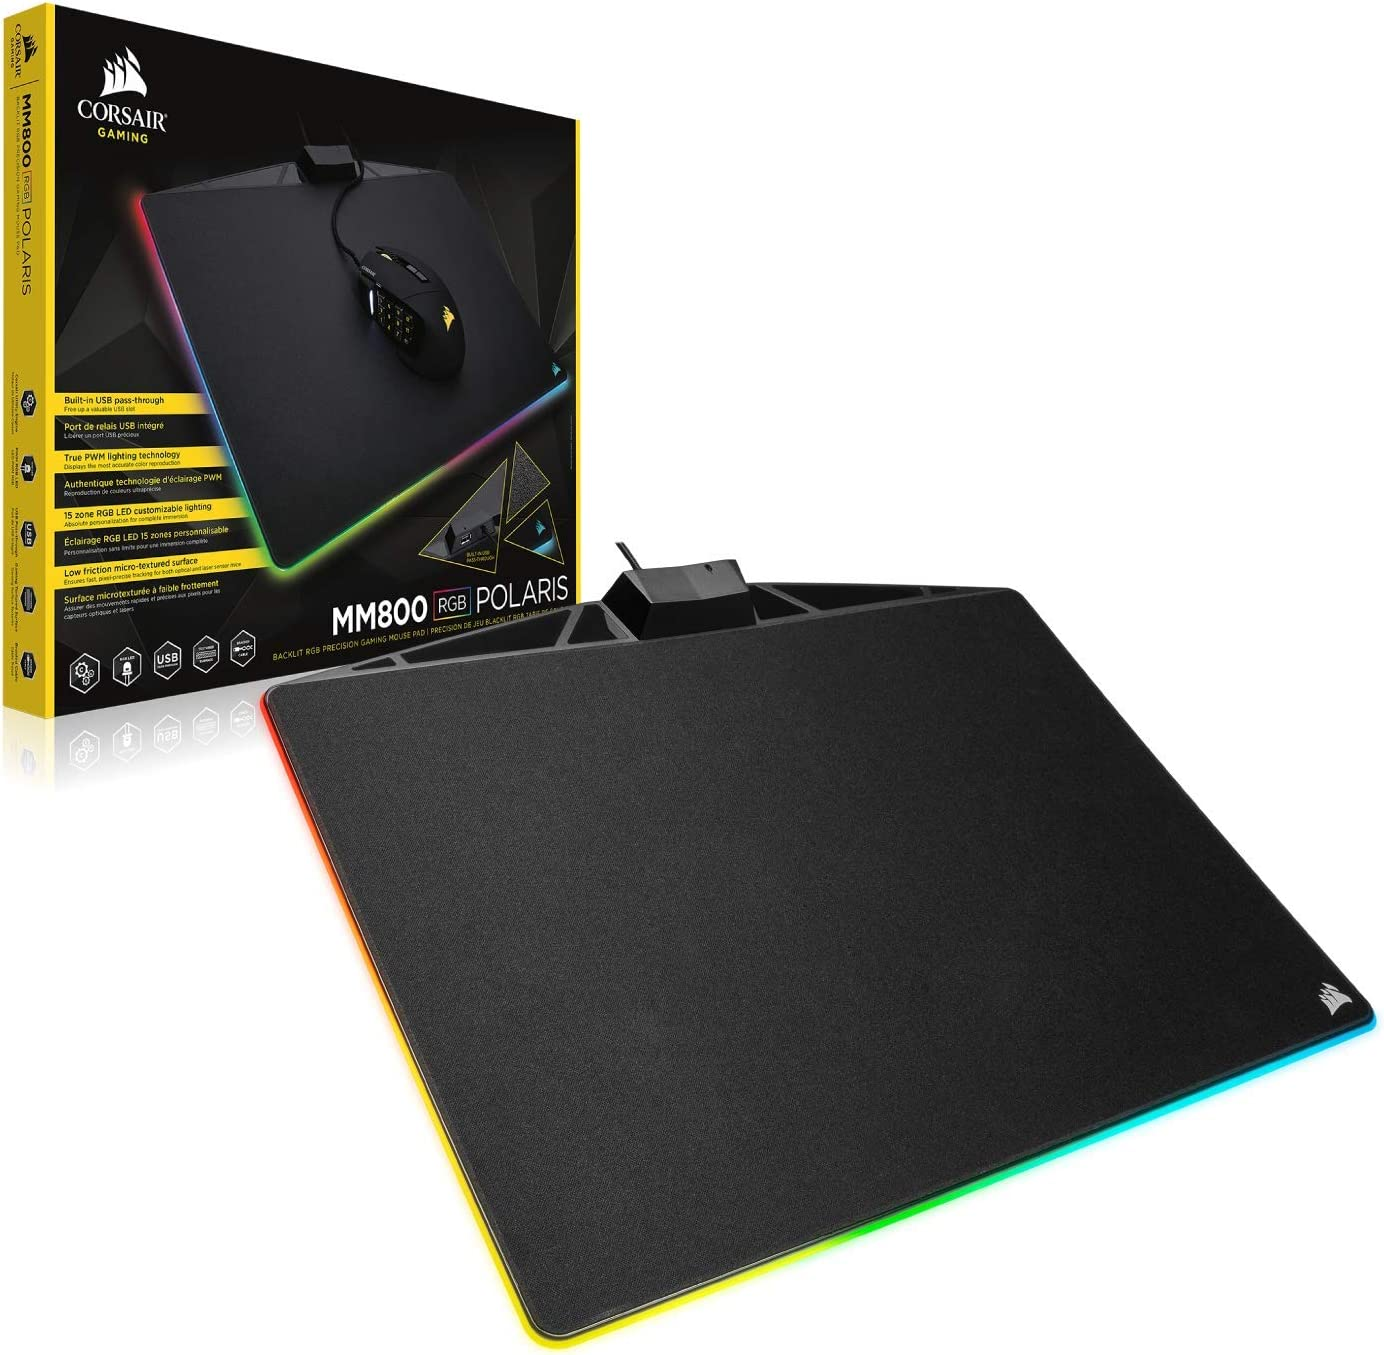 Corsair POLARIS Low Friction Gaming Mouse Pad w// USB Port /& 15 RGB LED Zones